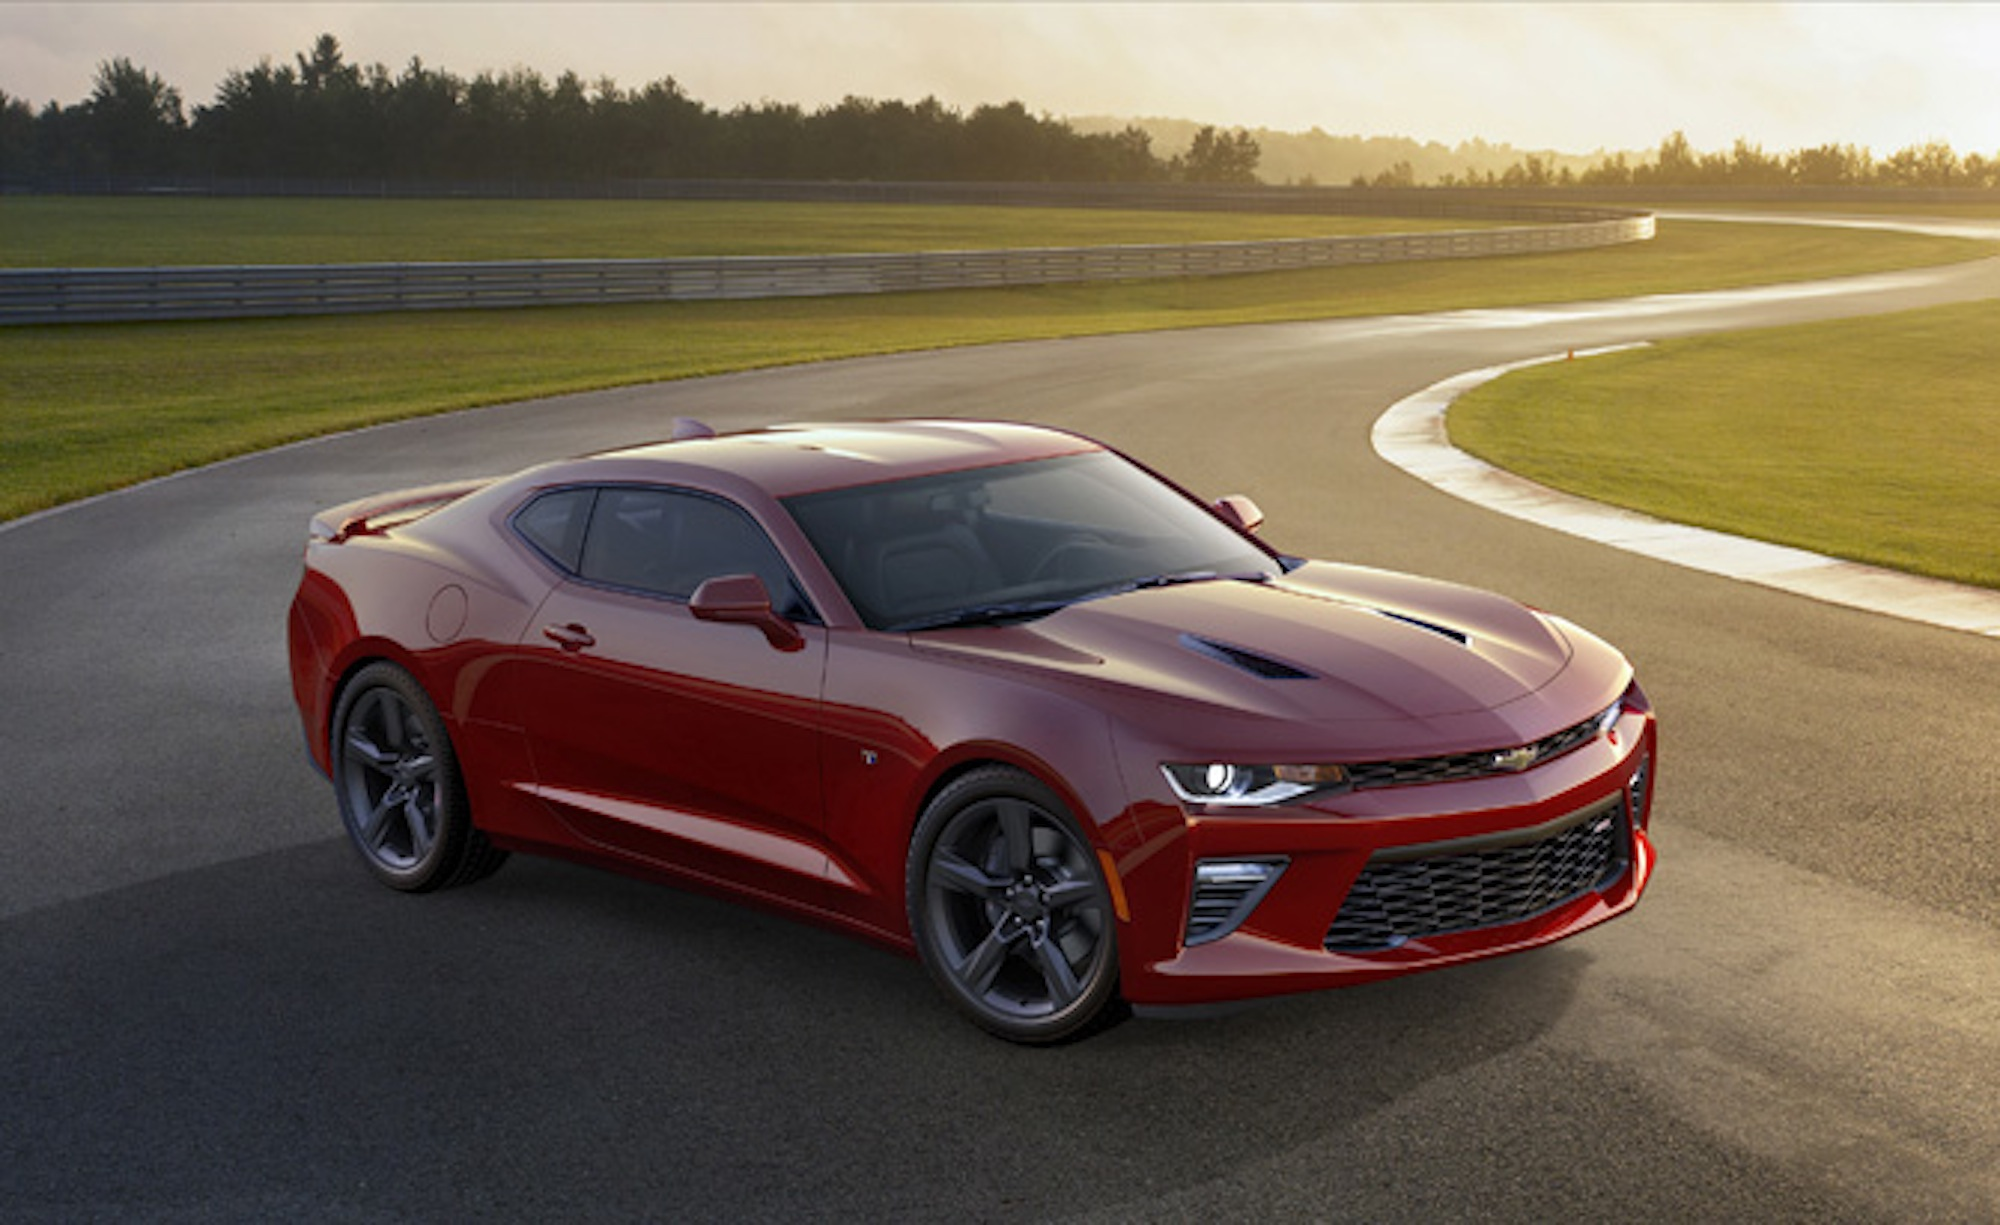 2016 Camaro Revealed   Toyota Nation Forum Toyota Car and Truck 2000x1225